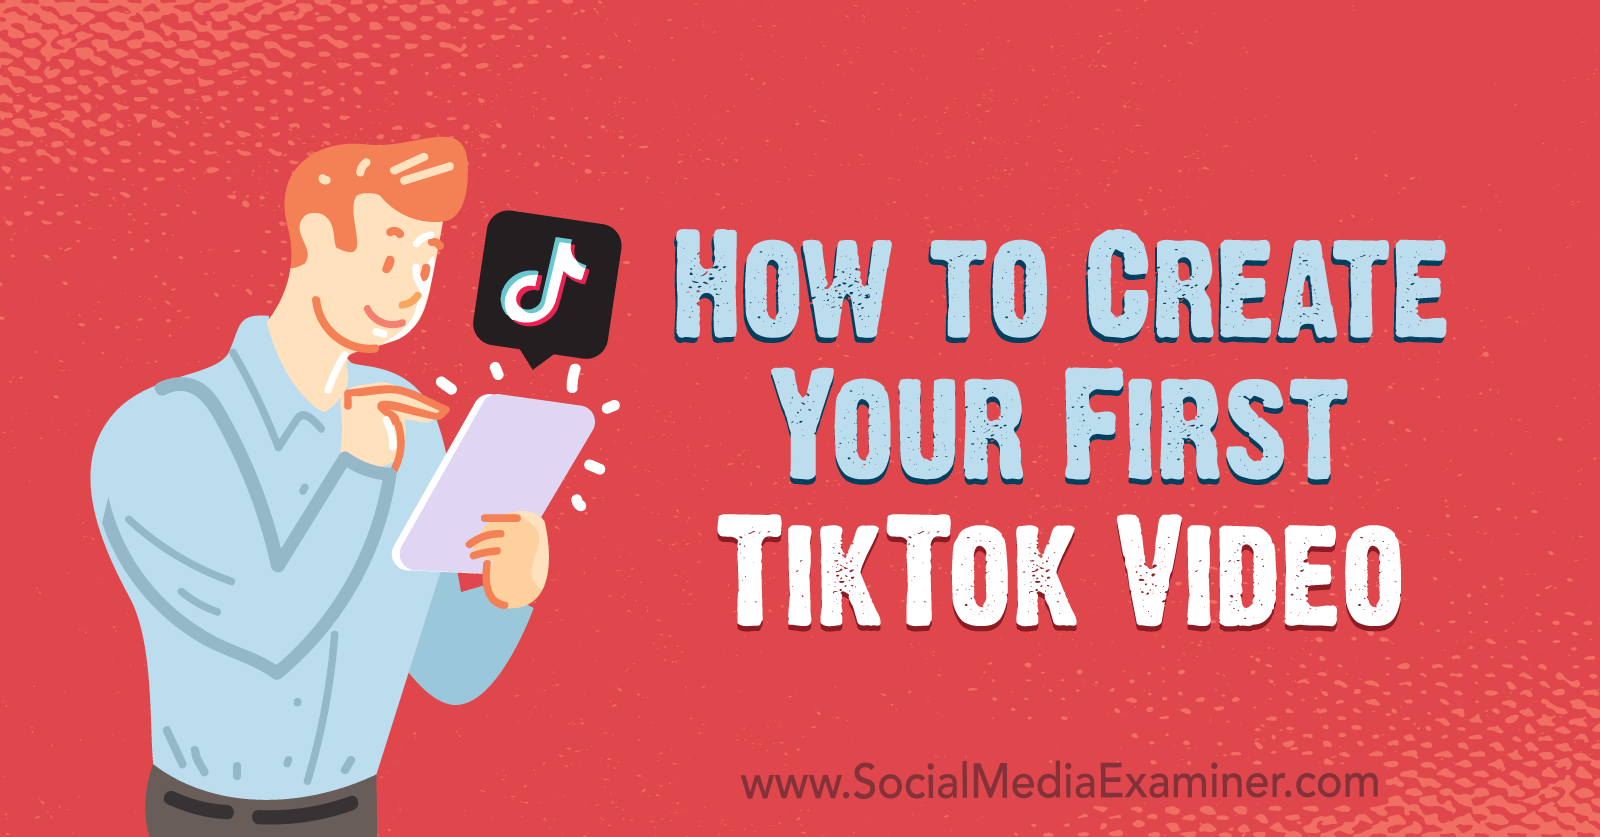 How To Create Your First Tiktok Video Social Media Examiner